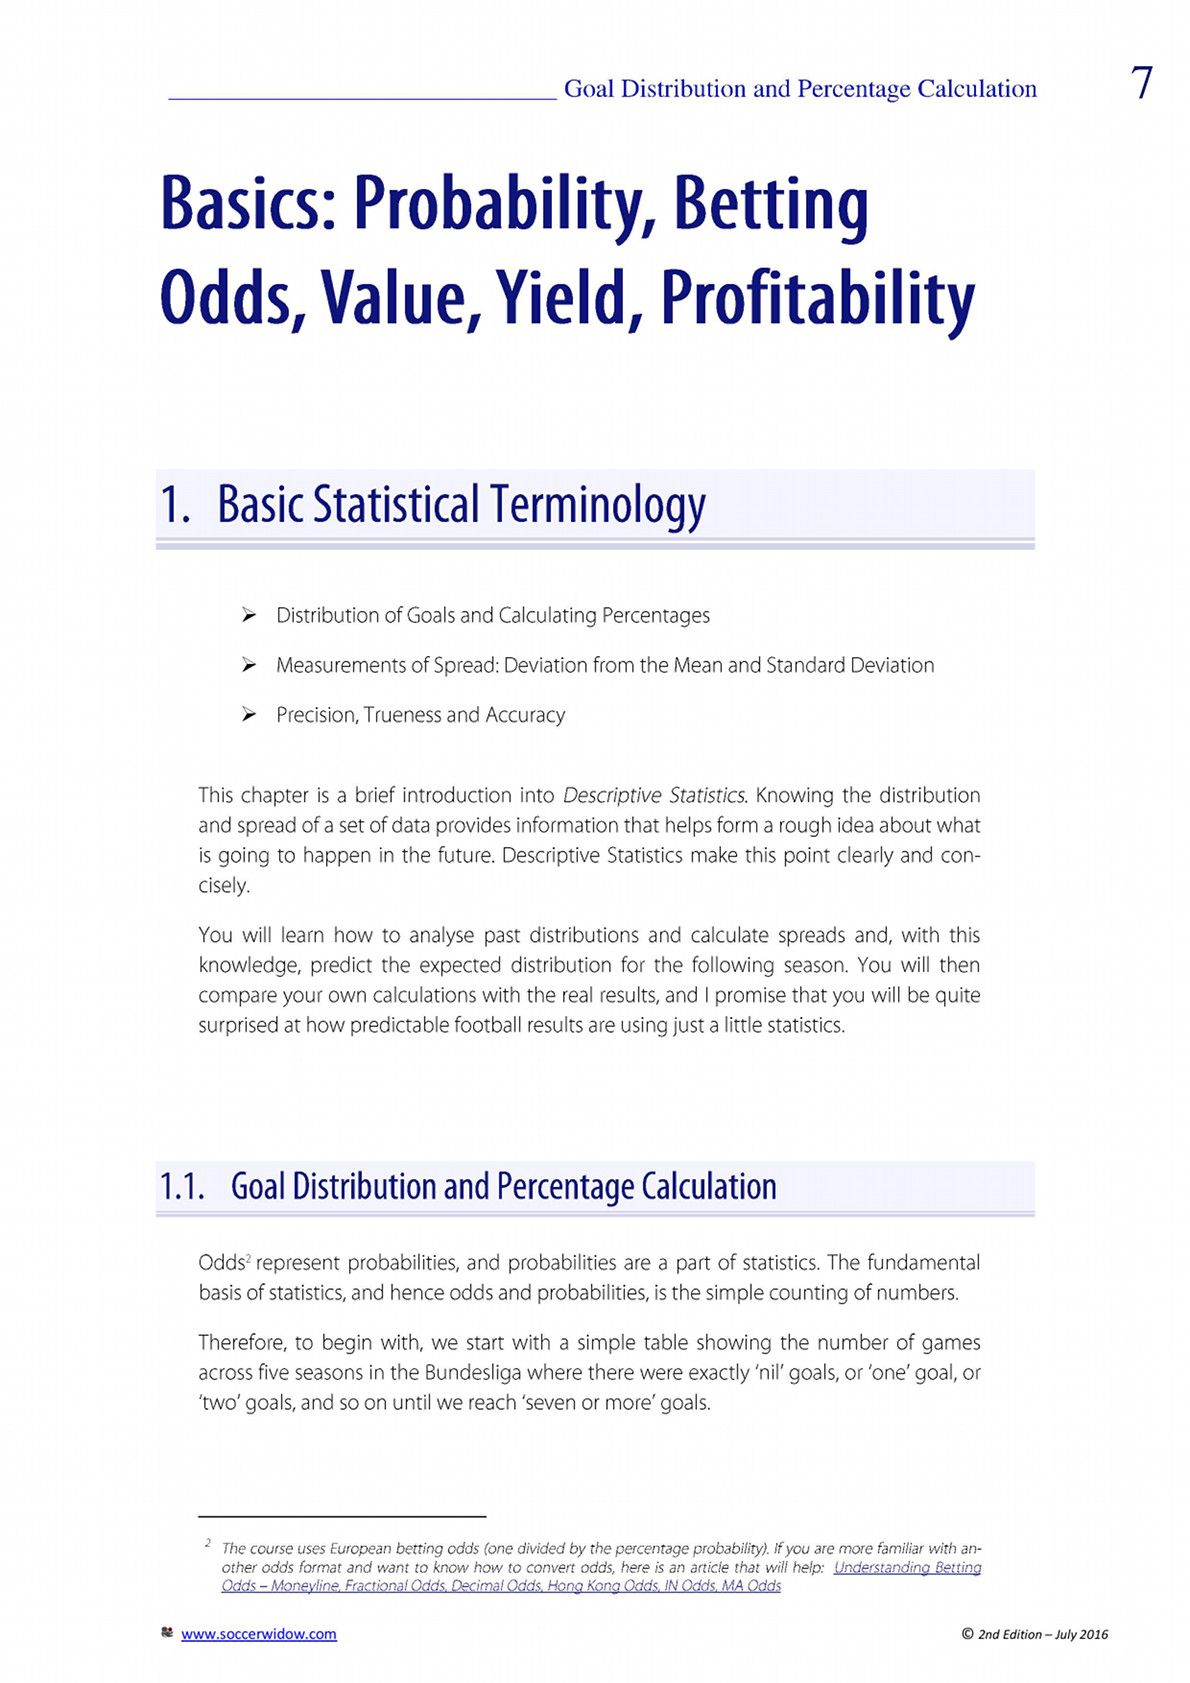 Betting Course Over Under - basic statistical terminology